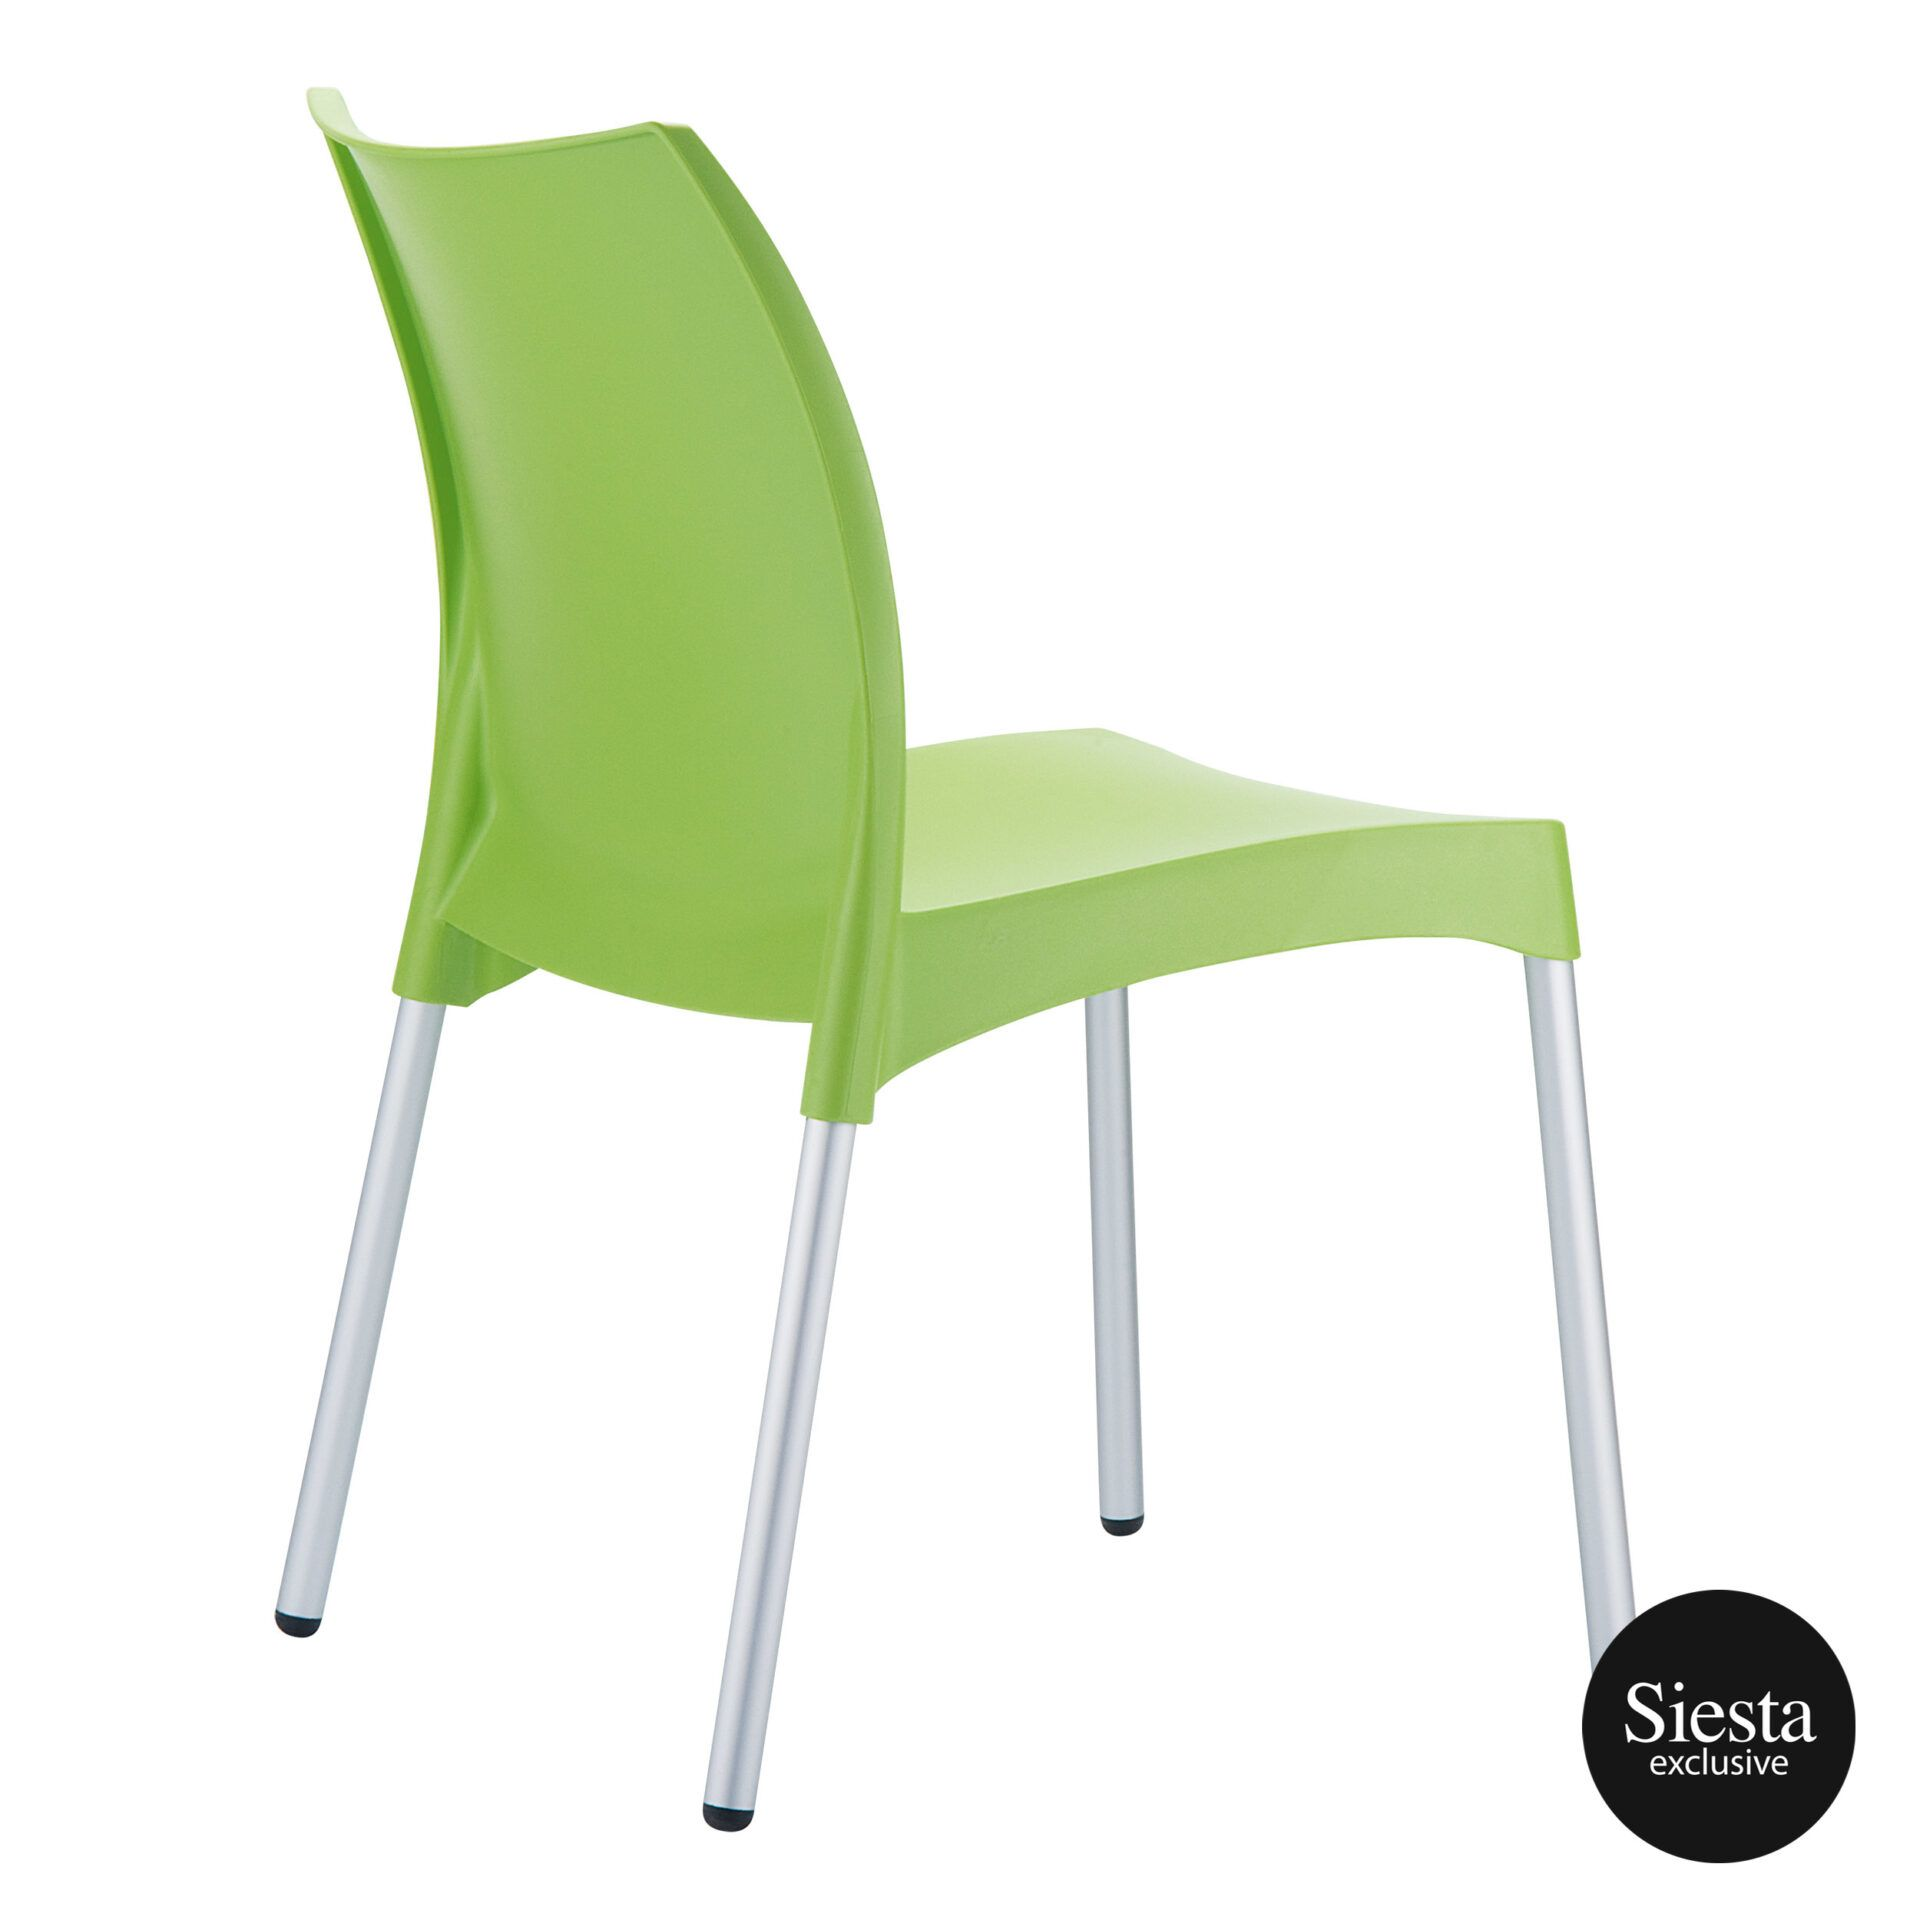 commercial outdoor hospitality seating vita chair green back side 1